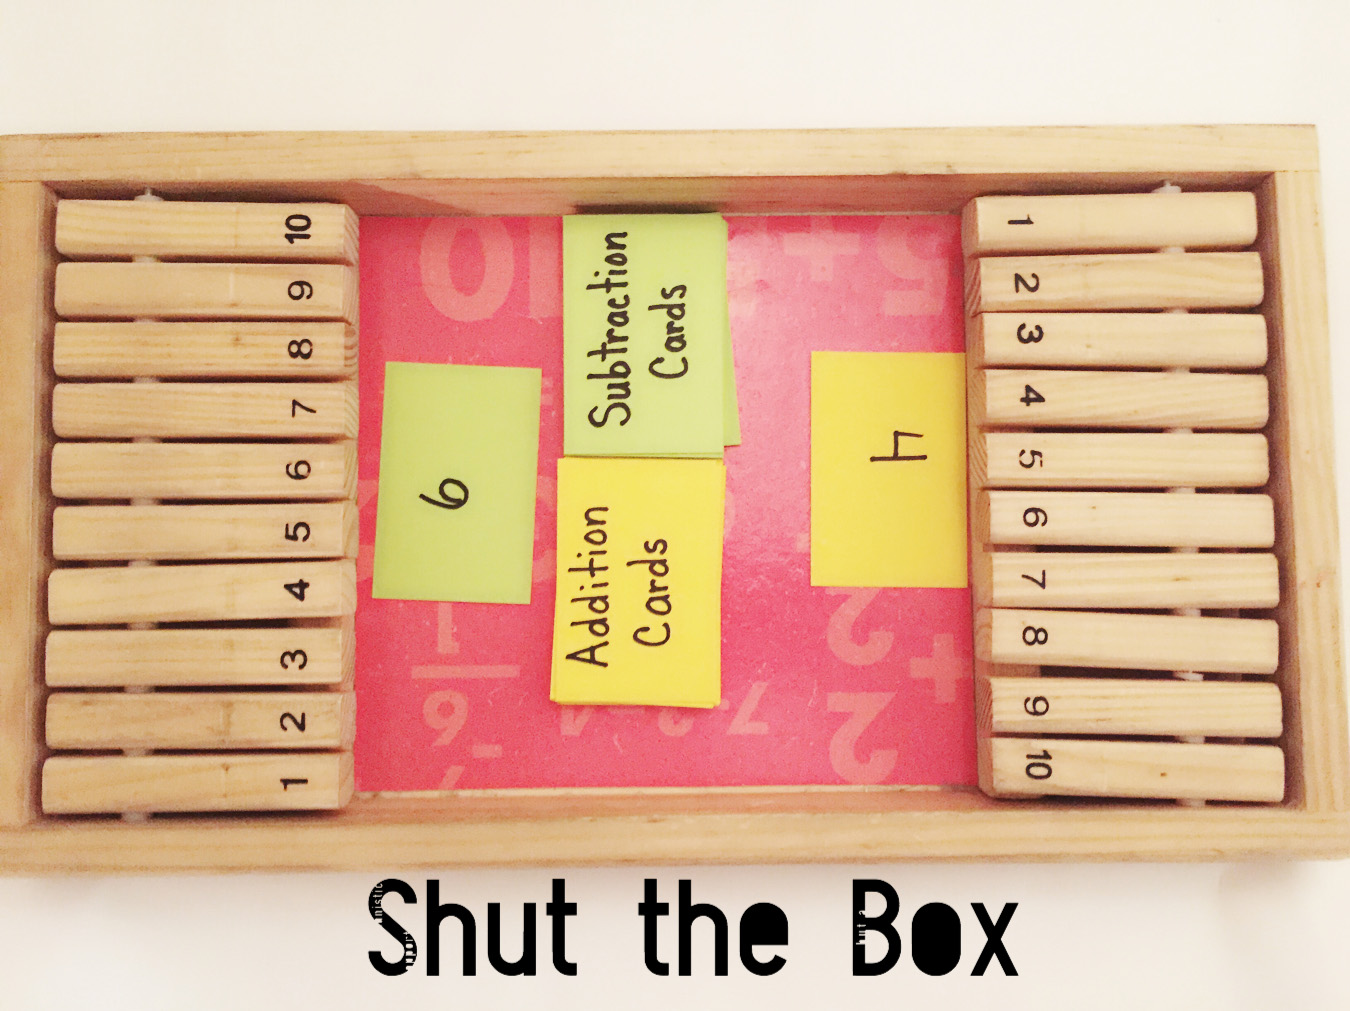 A Shut the Box game with addition and subtraction cards